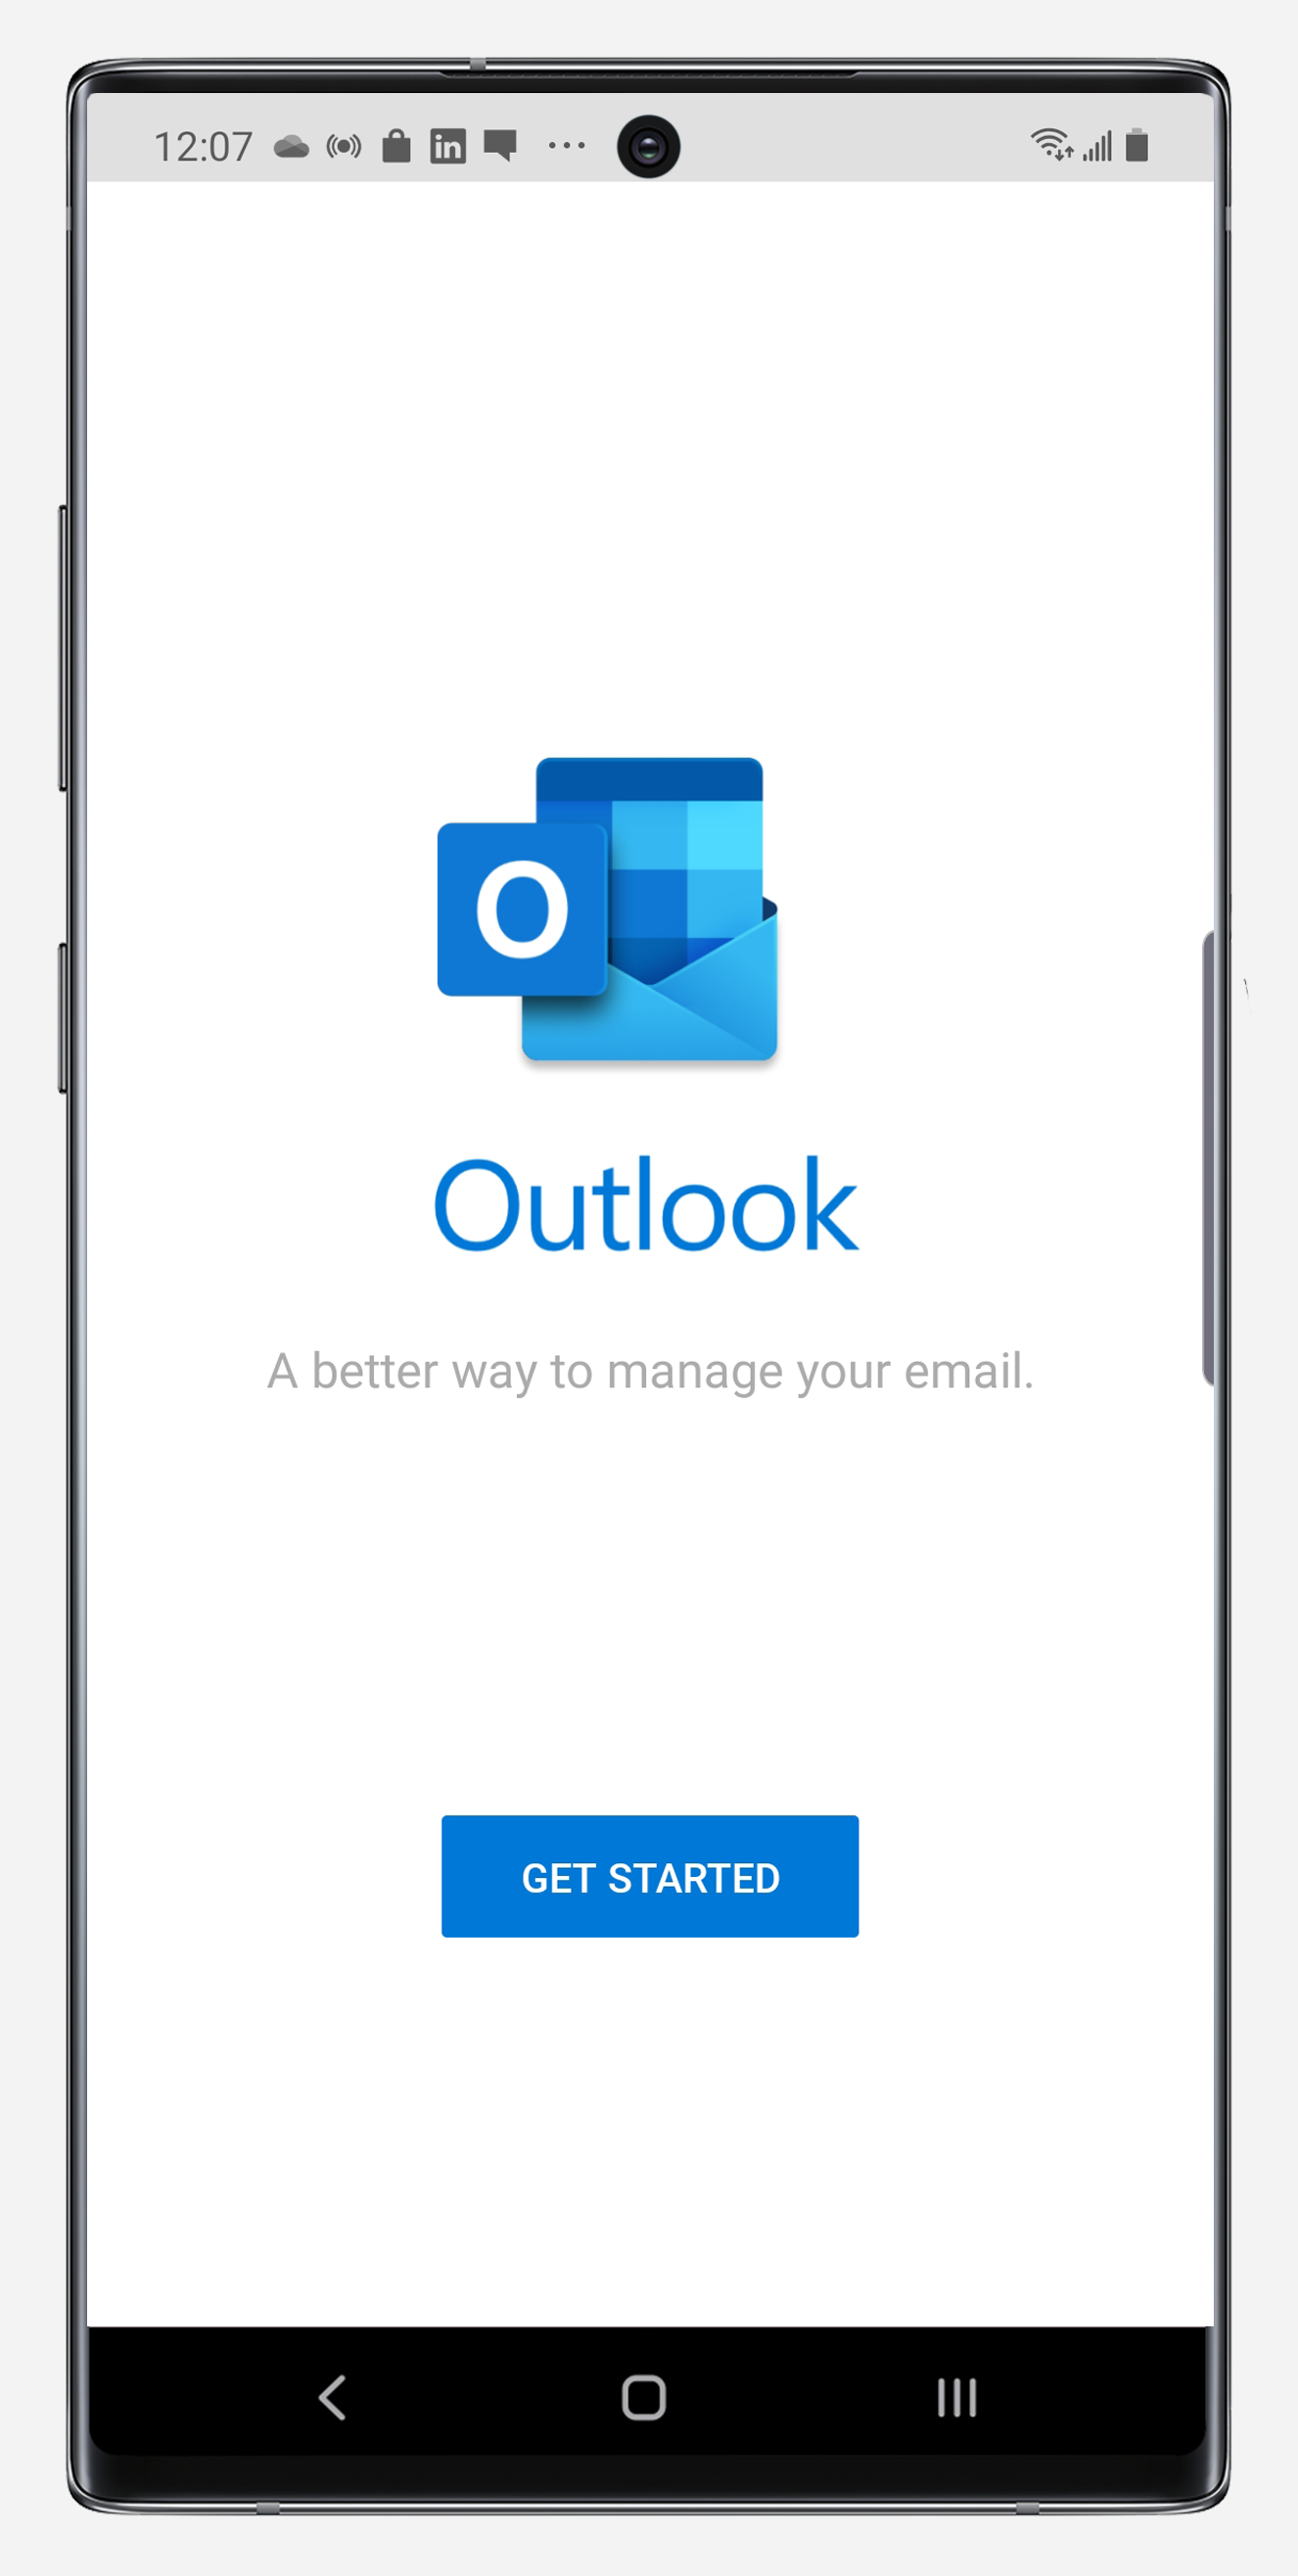 Outlook getting started on Note10